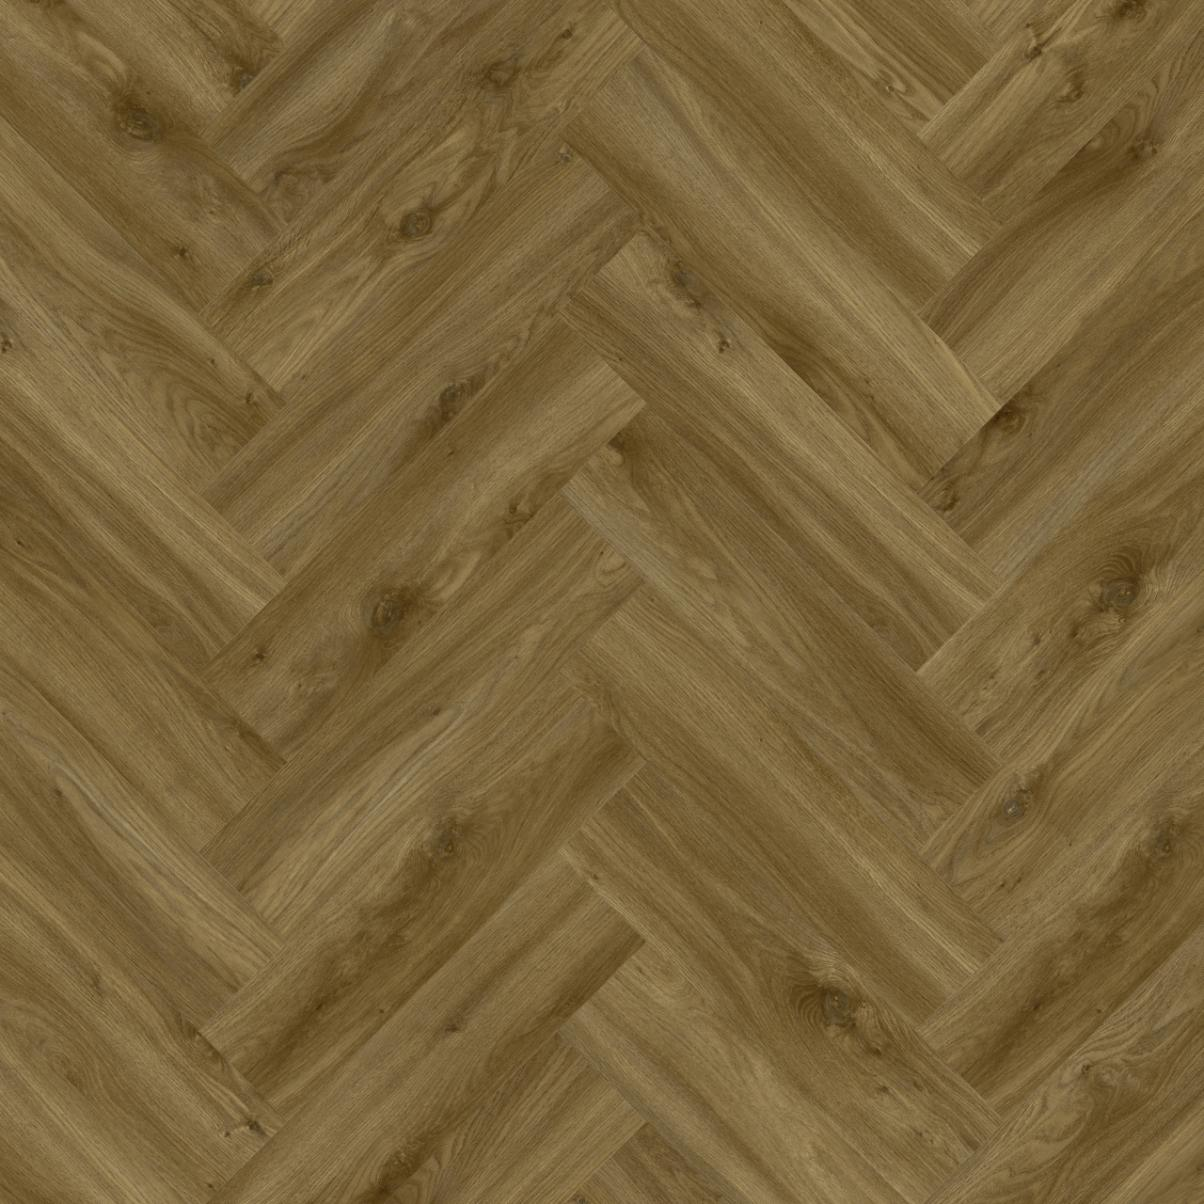 ПВХ  Модулео PARQUETRY SHORT Impress  58876 Sierra Oak (2,5мм-0,55мм)